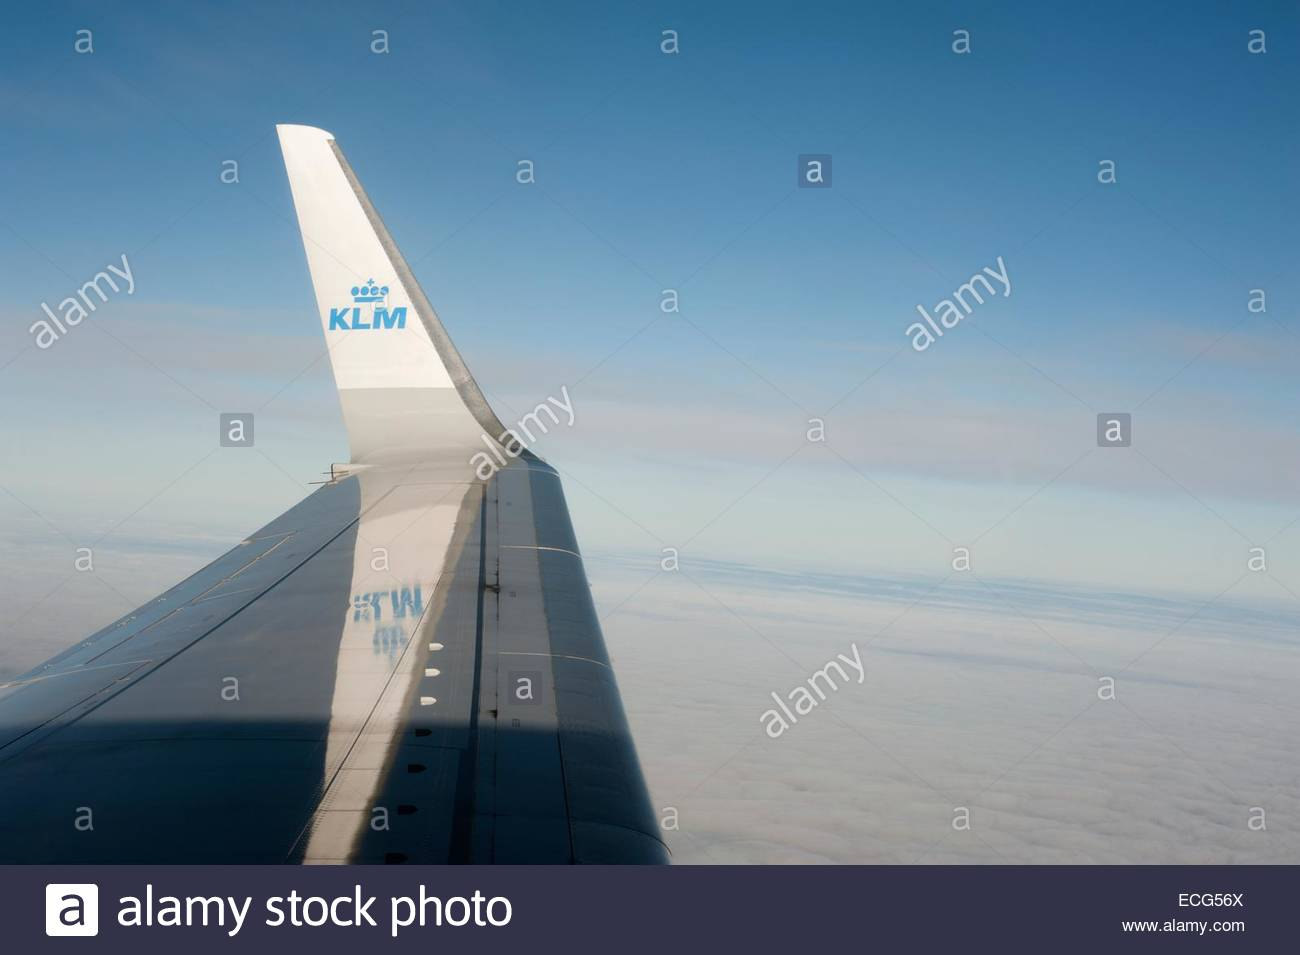 Wing of a KLM Boeing 737 with logo on winglet mirrored on the wing. - Stock Image